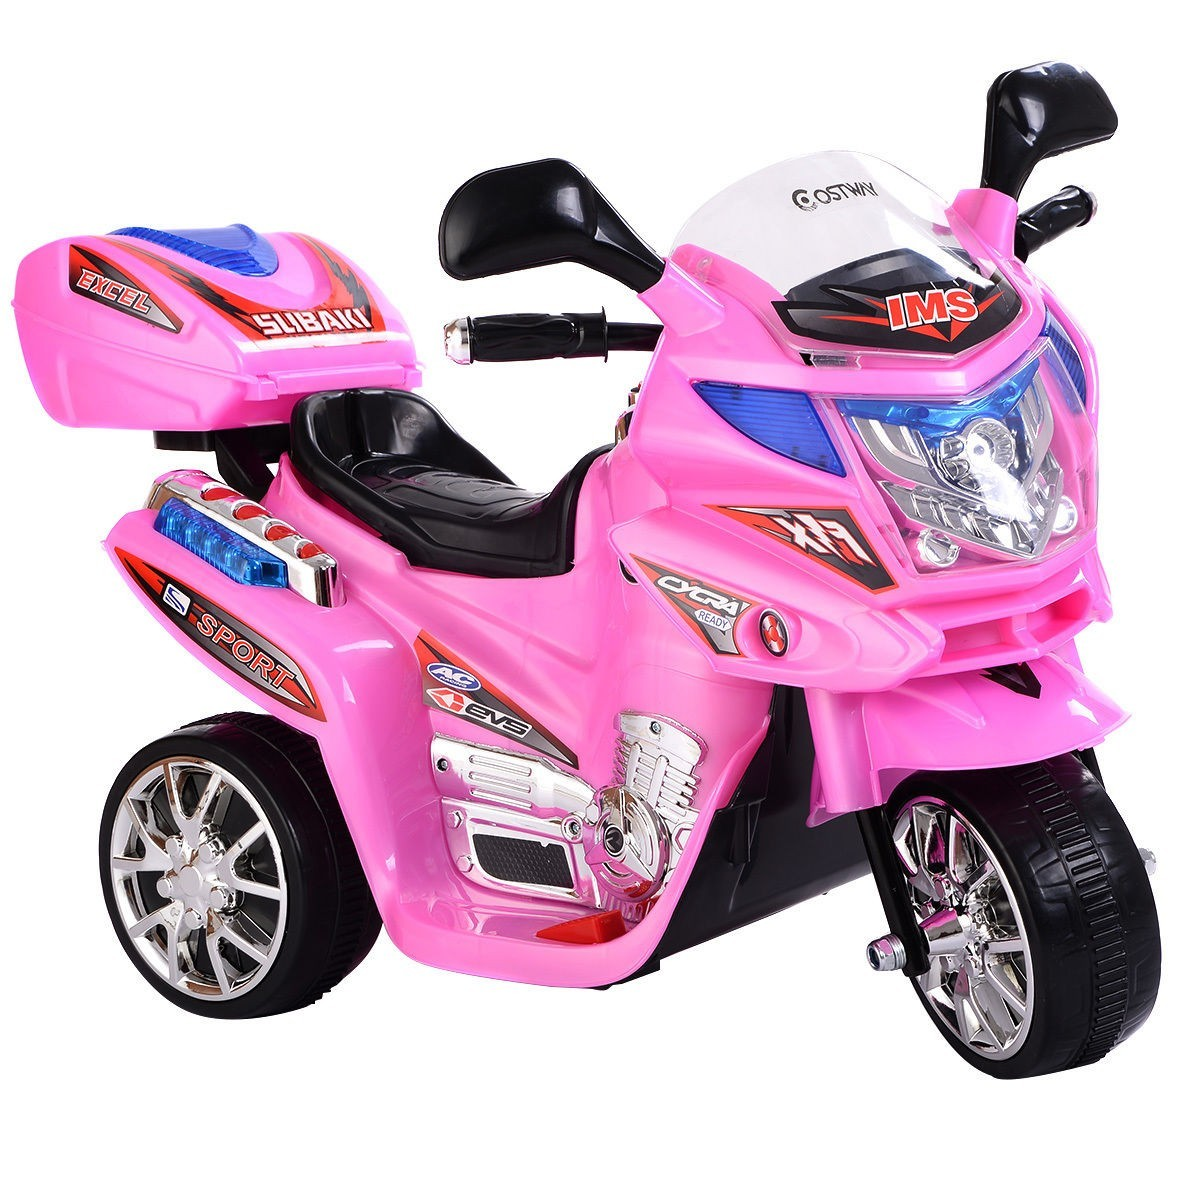 Kids Ride On Motorcycle 6V Battery Powered Electric Toy Power Bicyle New Pink